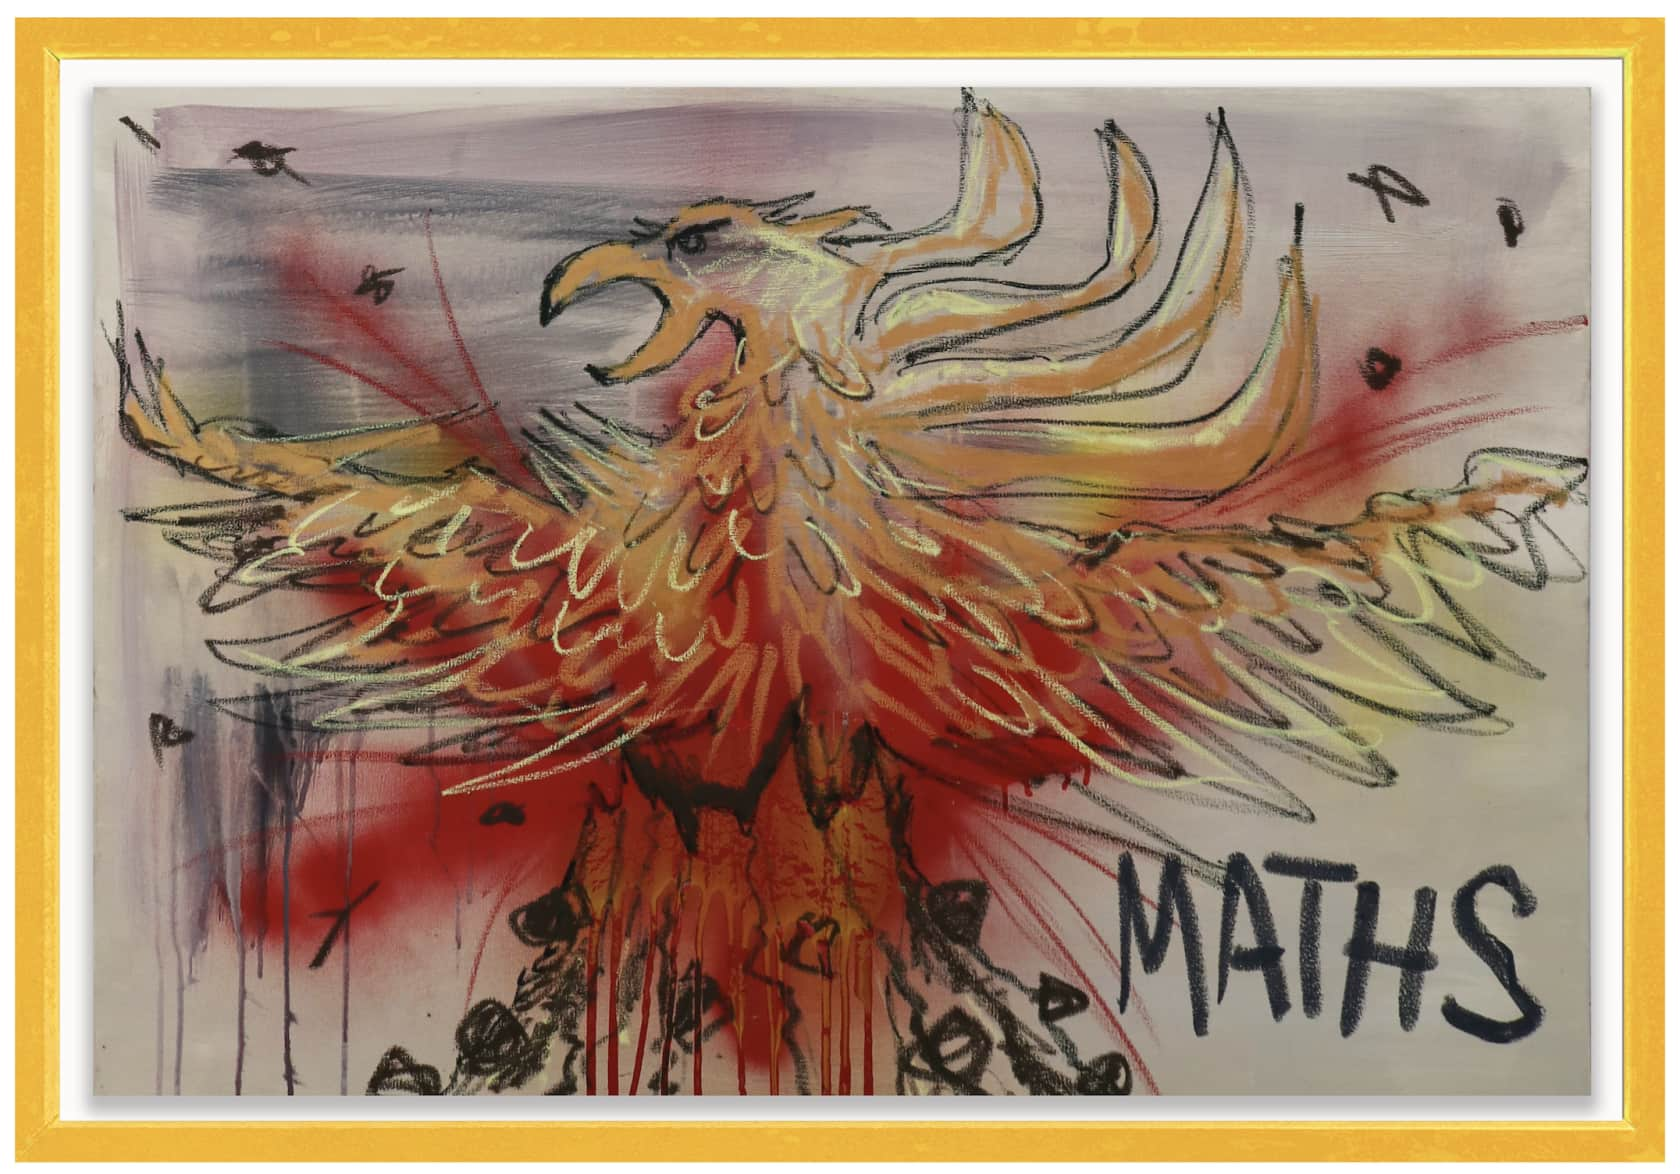 the connor brothers Maths Acrylic and oil pastel on canvas